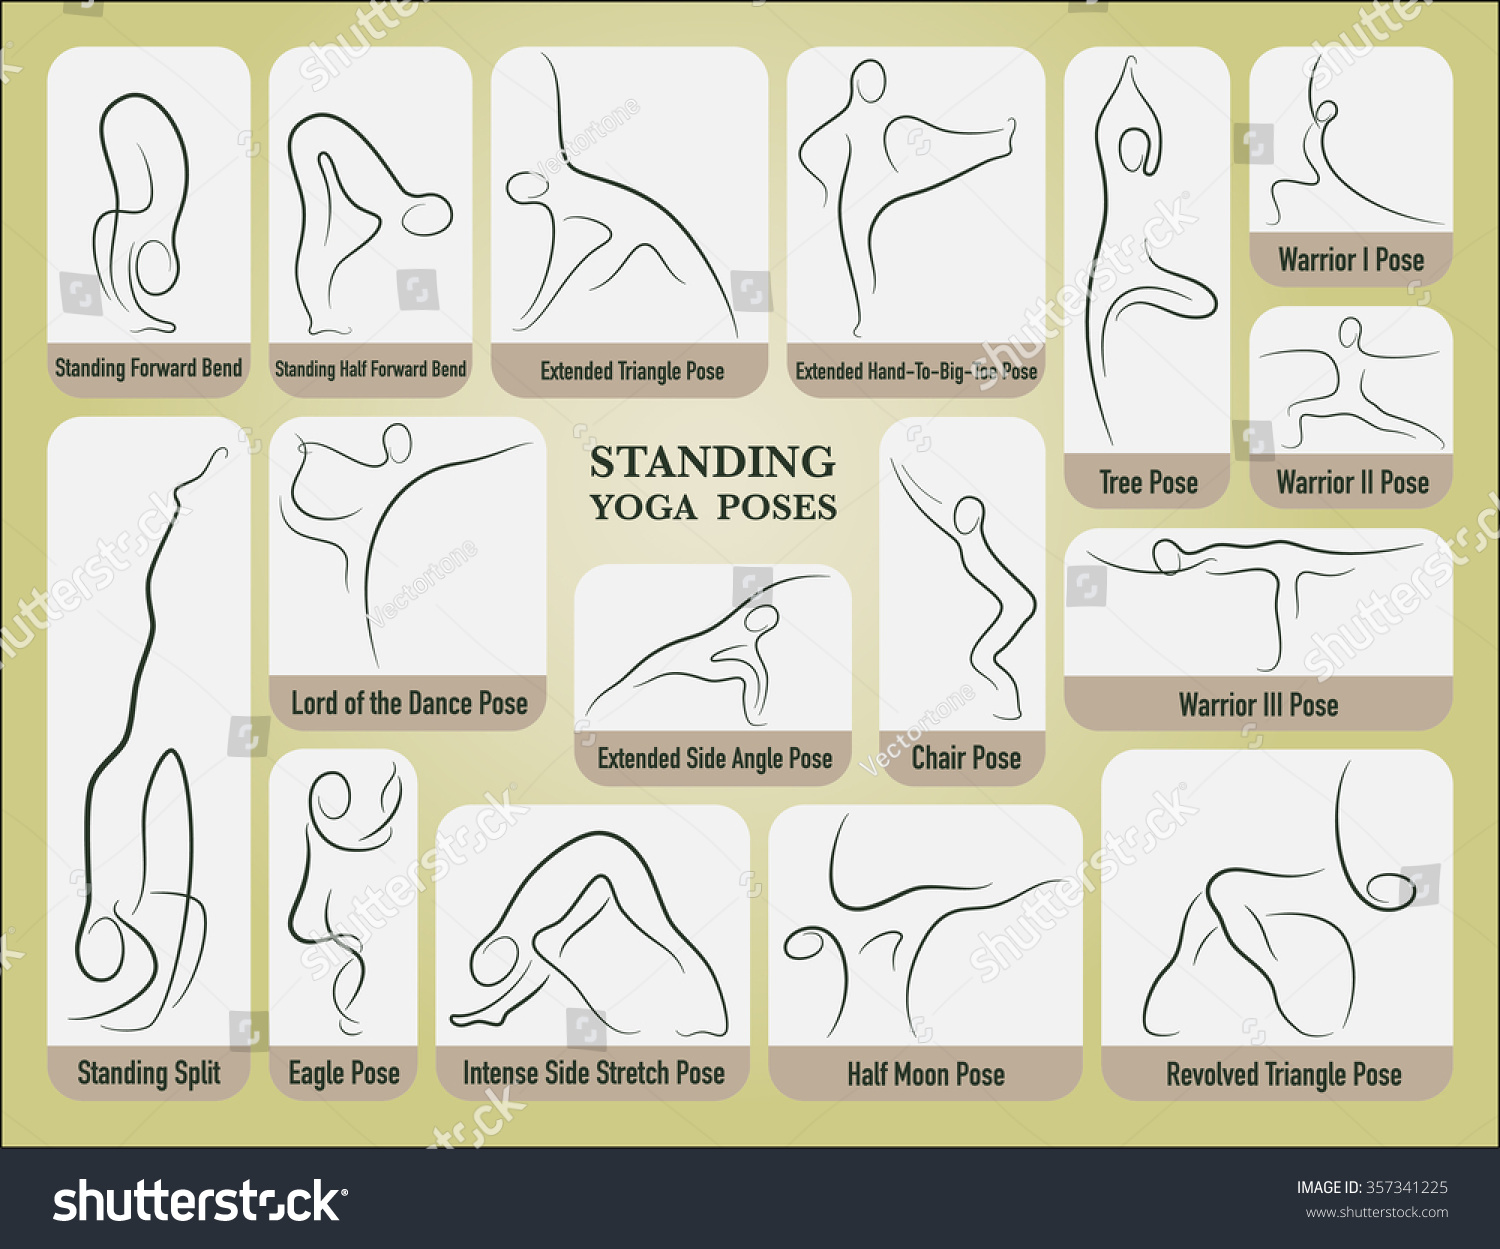 Yoga Standing Poses Set In Gesture Drawing Line With Posture Name